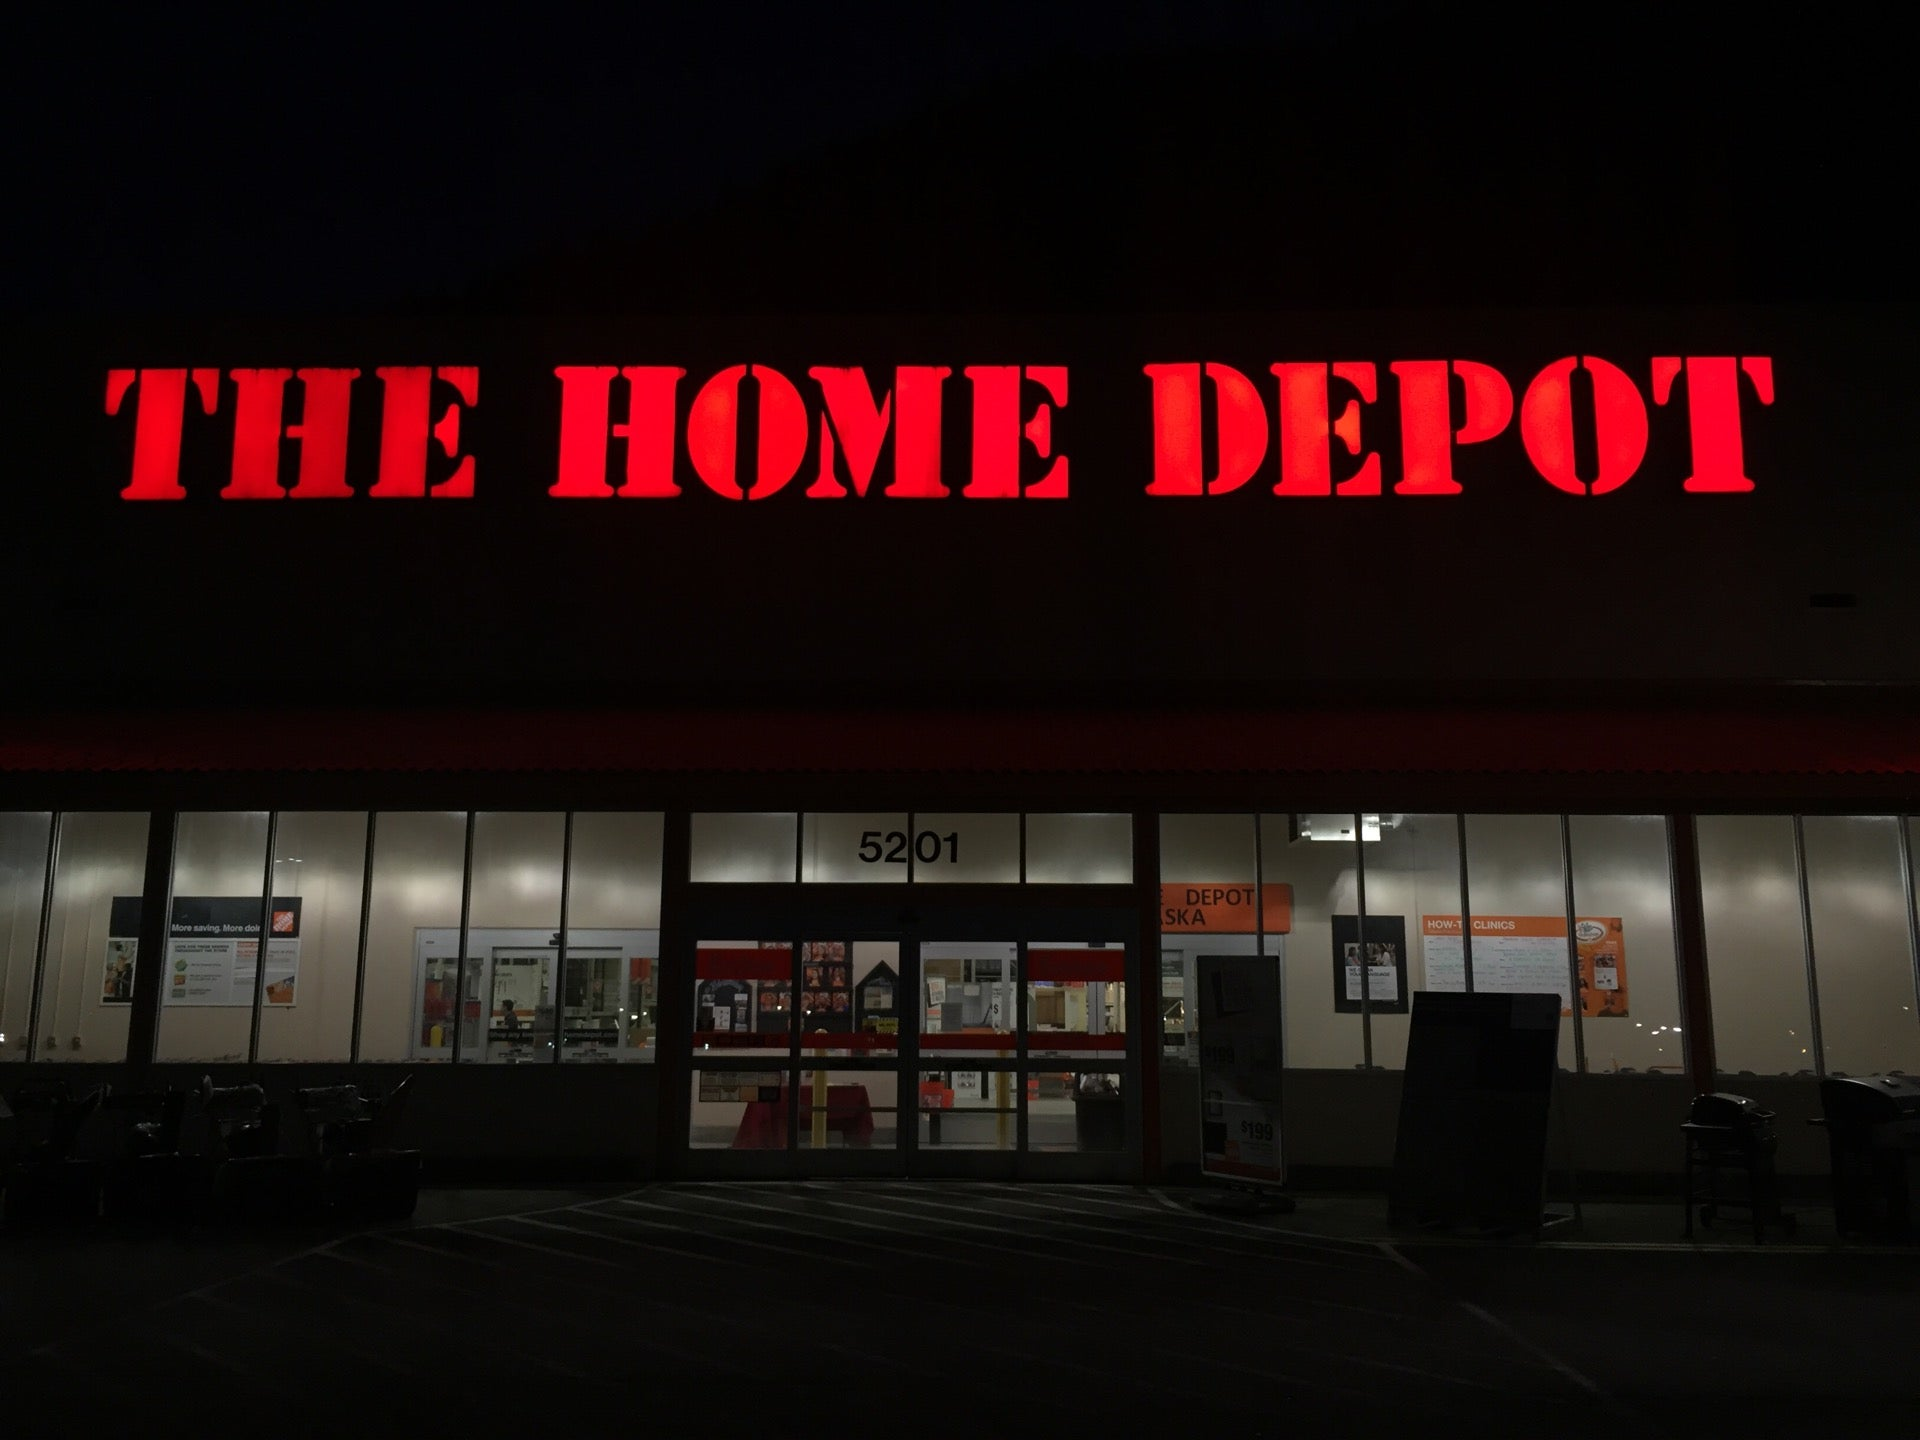 The Home Depot at 5201 Commercial Blvd Juneau, AK - The Daily Meal